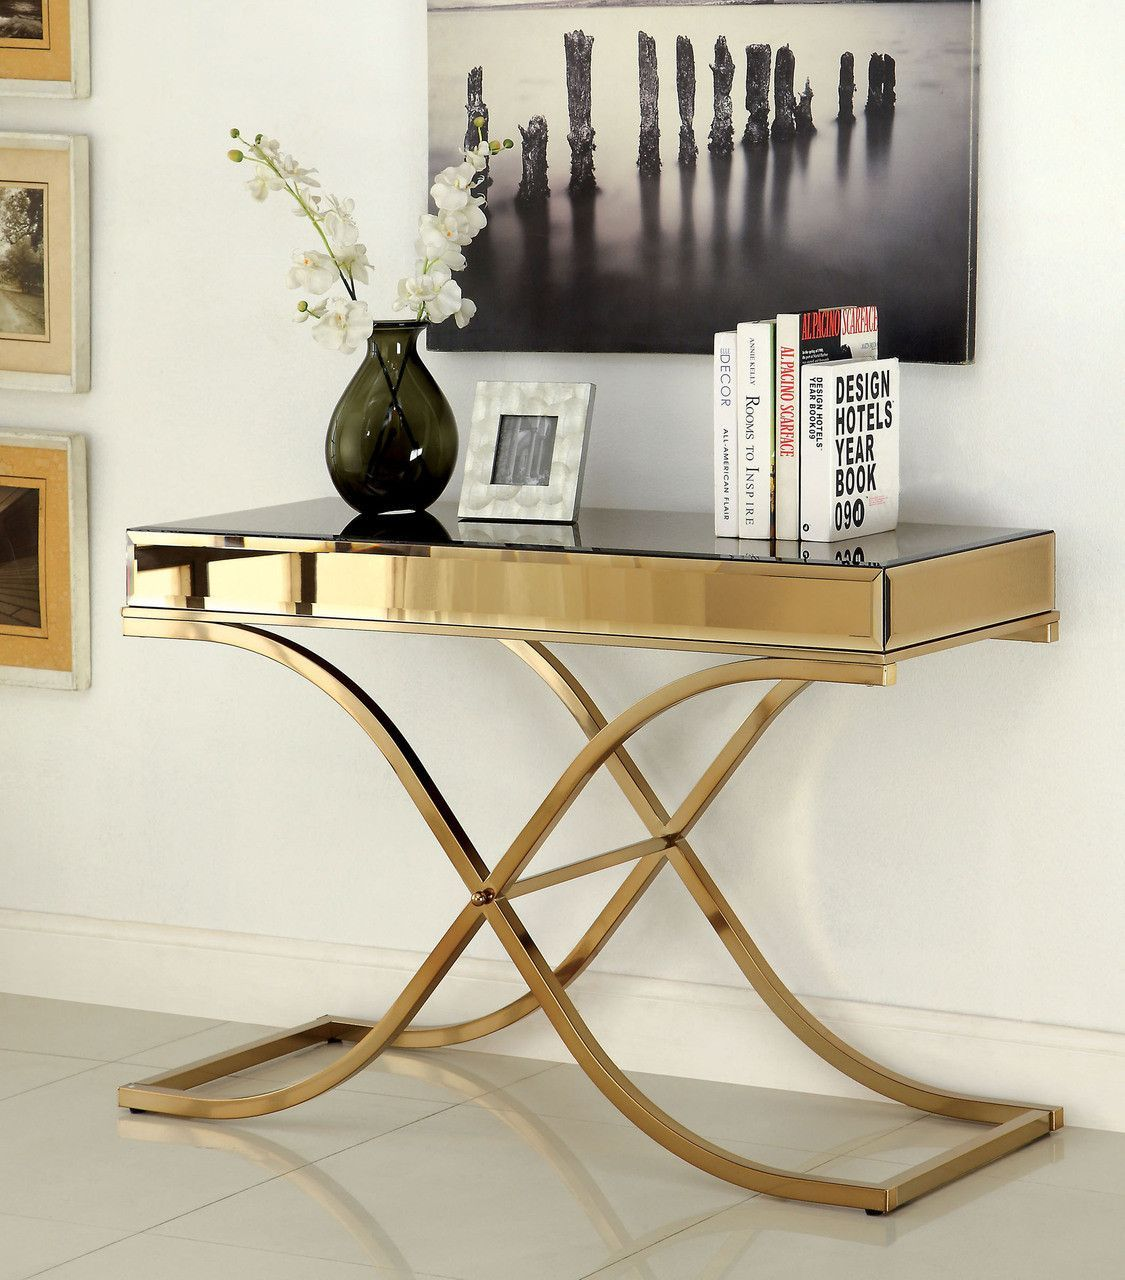 """CM4230S Sofa Table Sundance CollectionSleek with carefully """"X"""" curved framework accented with spacioustable top space. Sofa Table Sale for $524"""